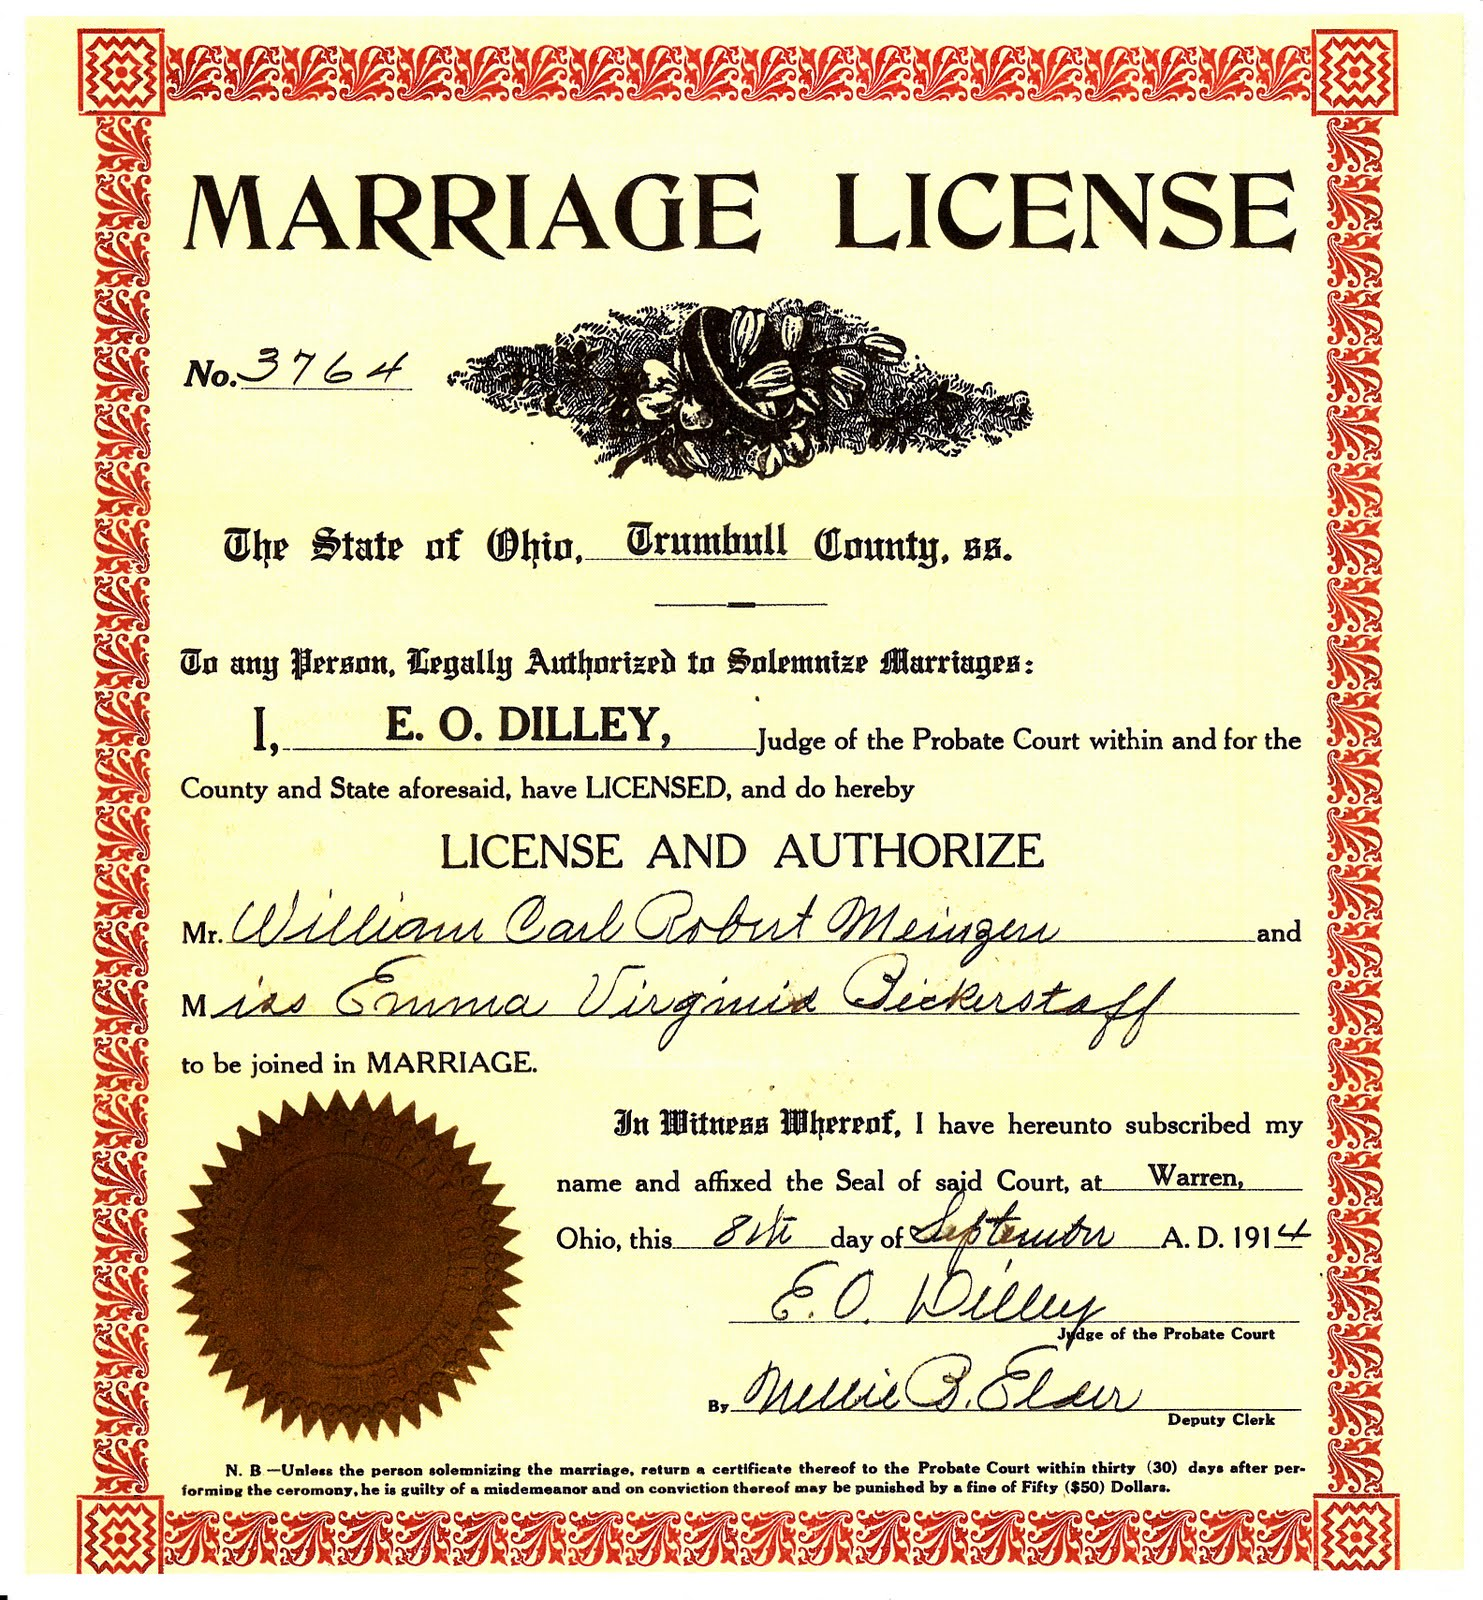 Marriage Certificate Search How to Find and Order Certified Copies of Marriage Certificates Online